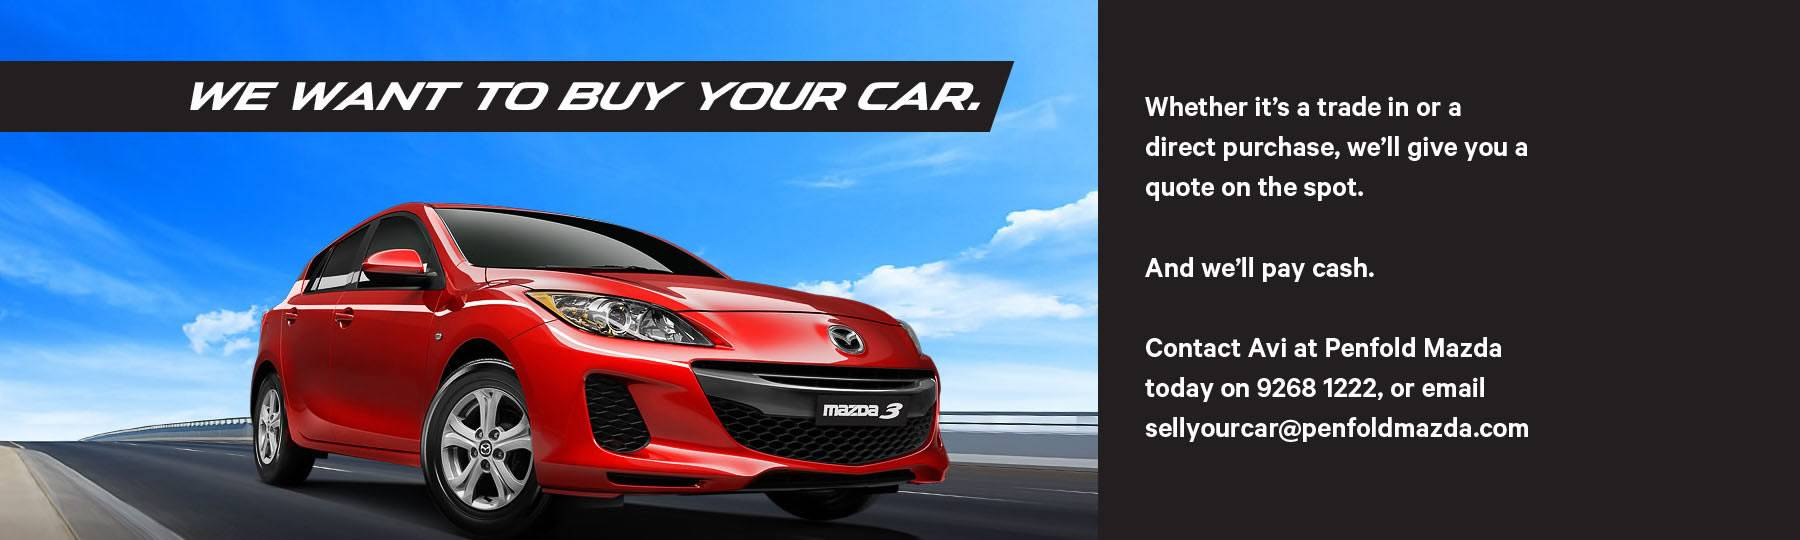 Penfold Mazda Sell Your Car